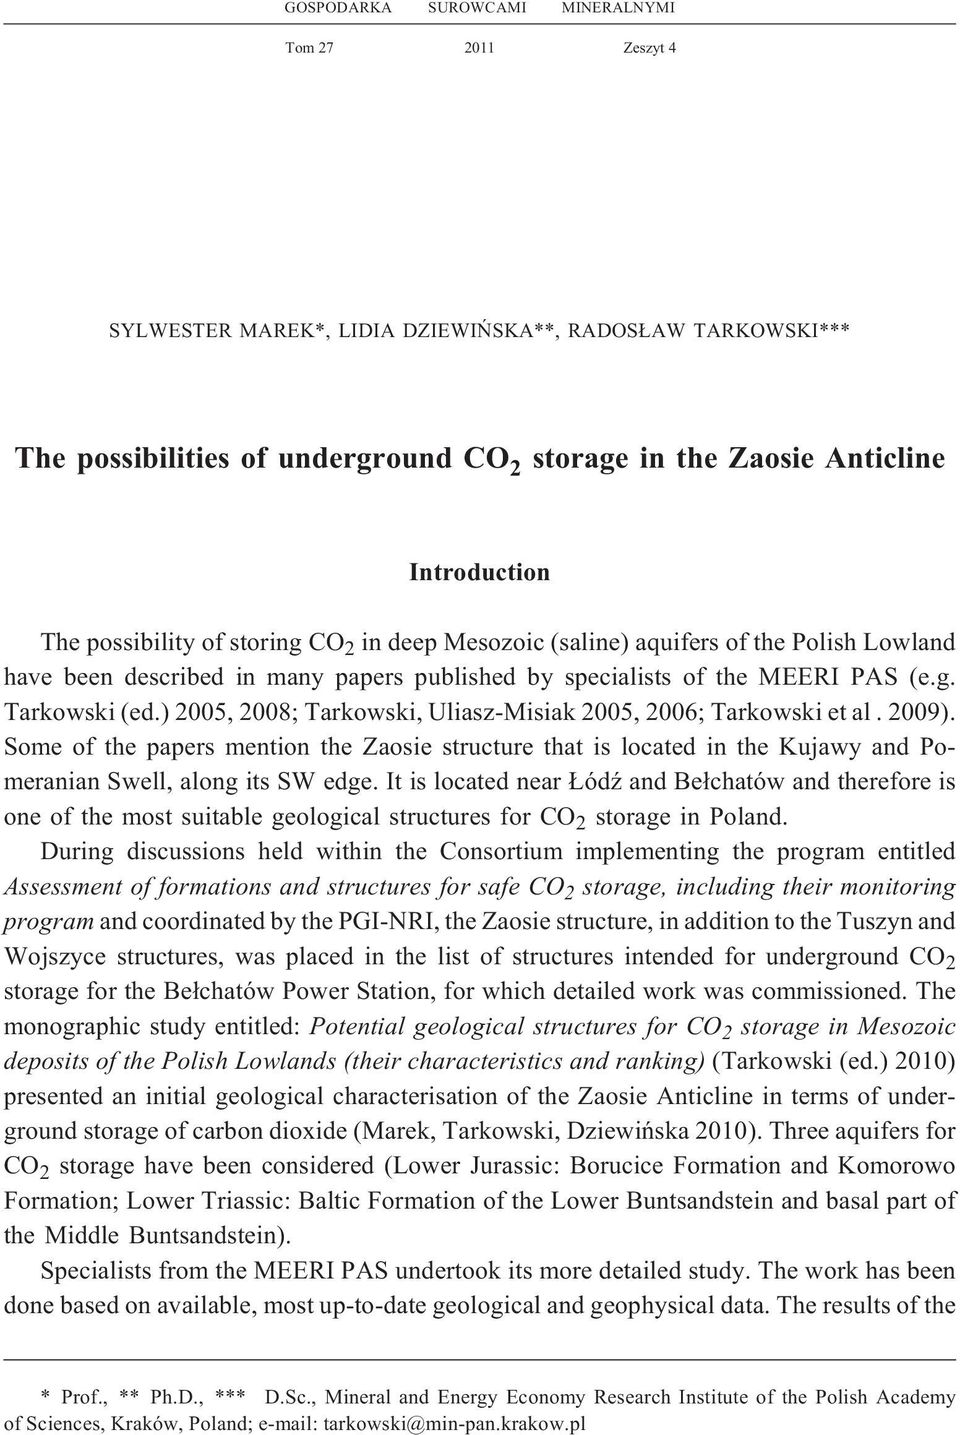 ) 2005, 2008; Tarkwski, Uliasz-Misiak 2005, 2006; Tarkwski et al. 2009). Sme f the papers mentin the Zasie structure that is lcated in the Kujawy and Pmeranian Swell, alng its SW edge.